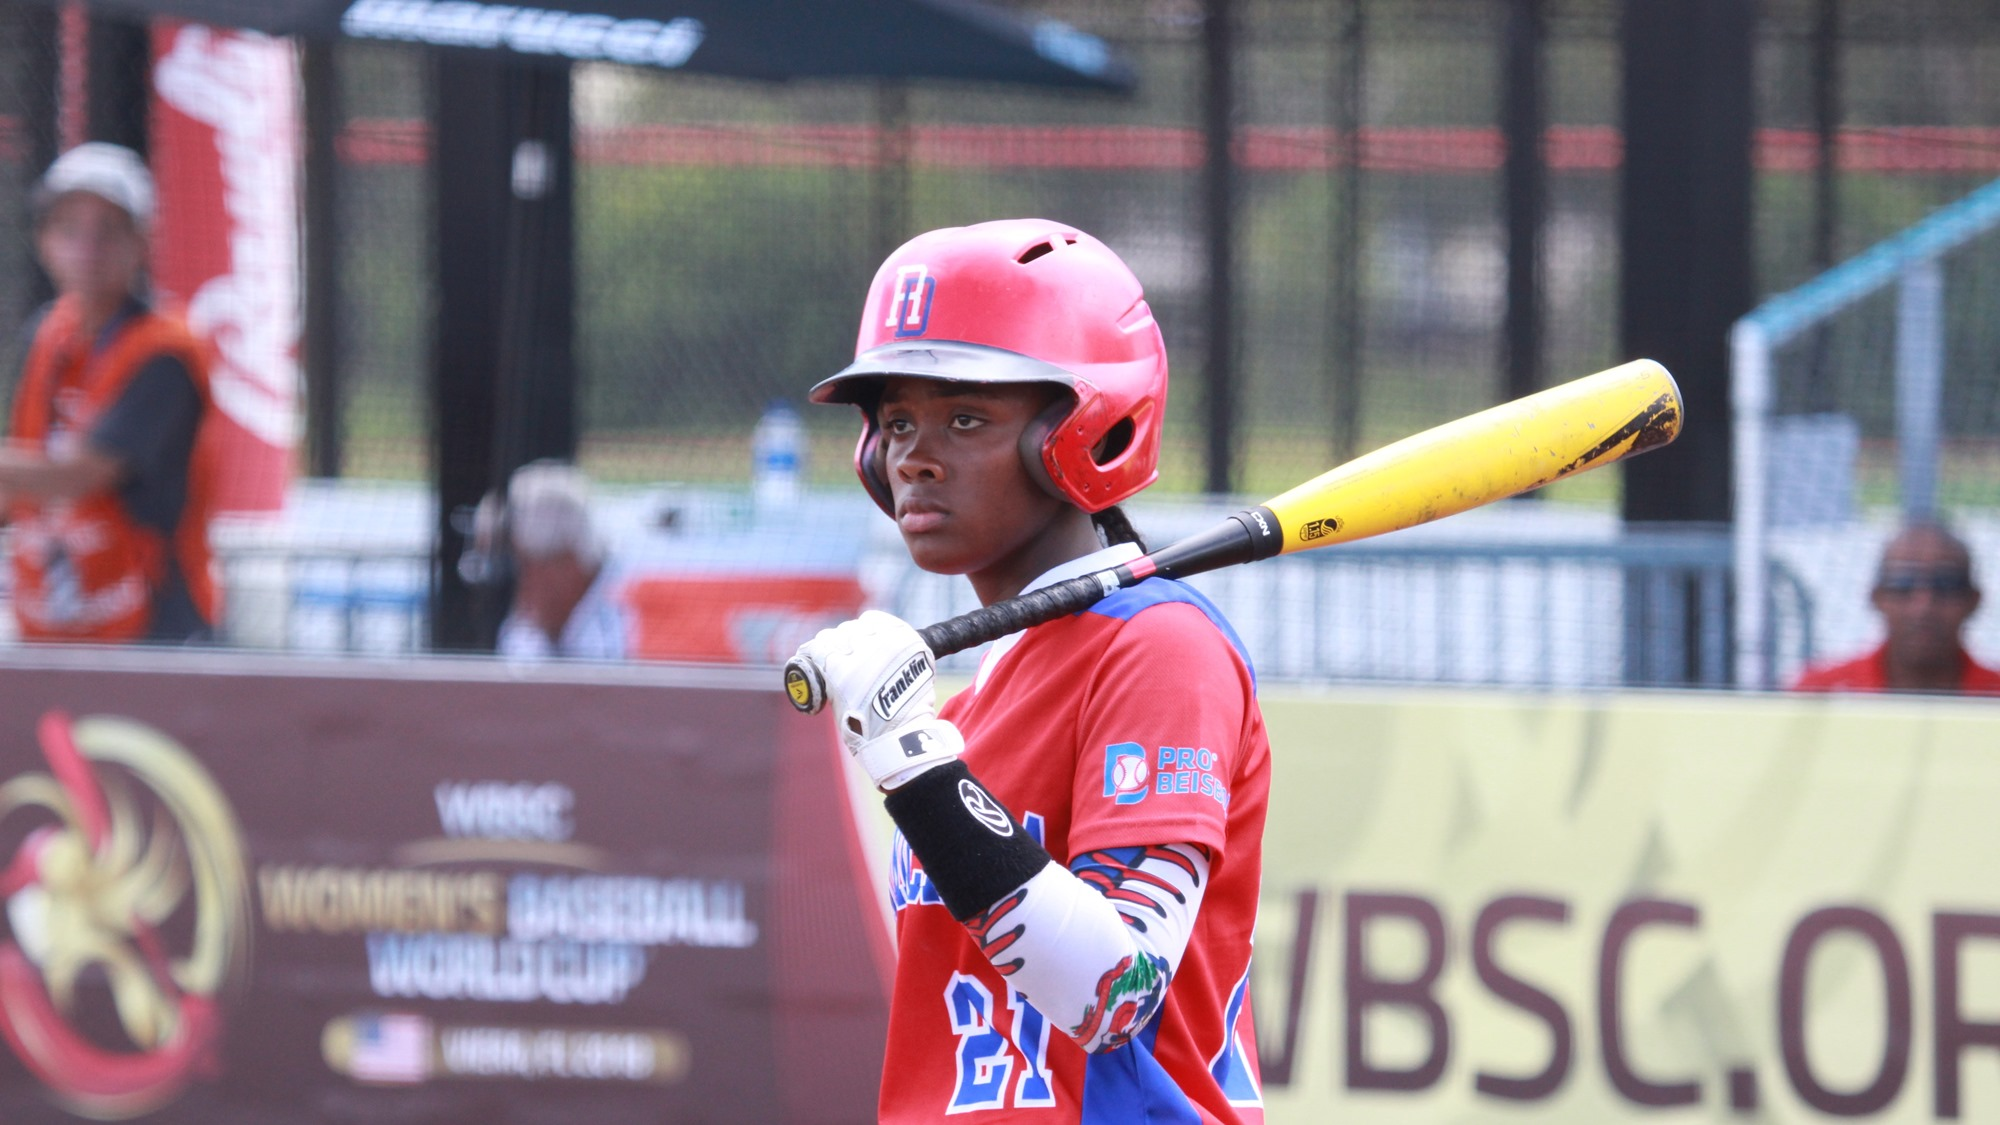 Noelia Moreno played catcher for the Dominican Republic